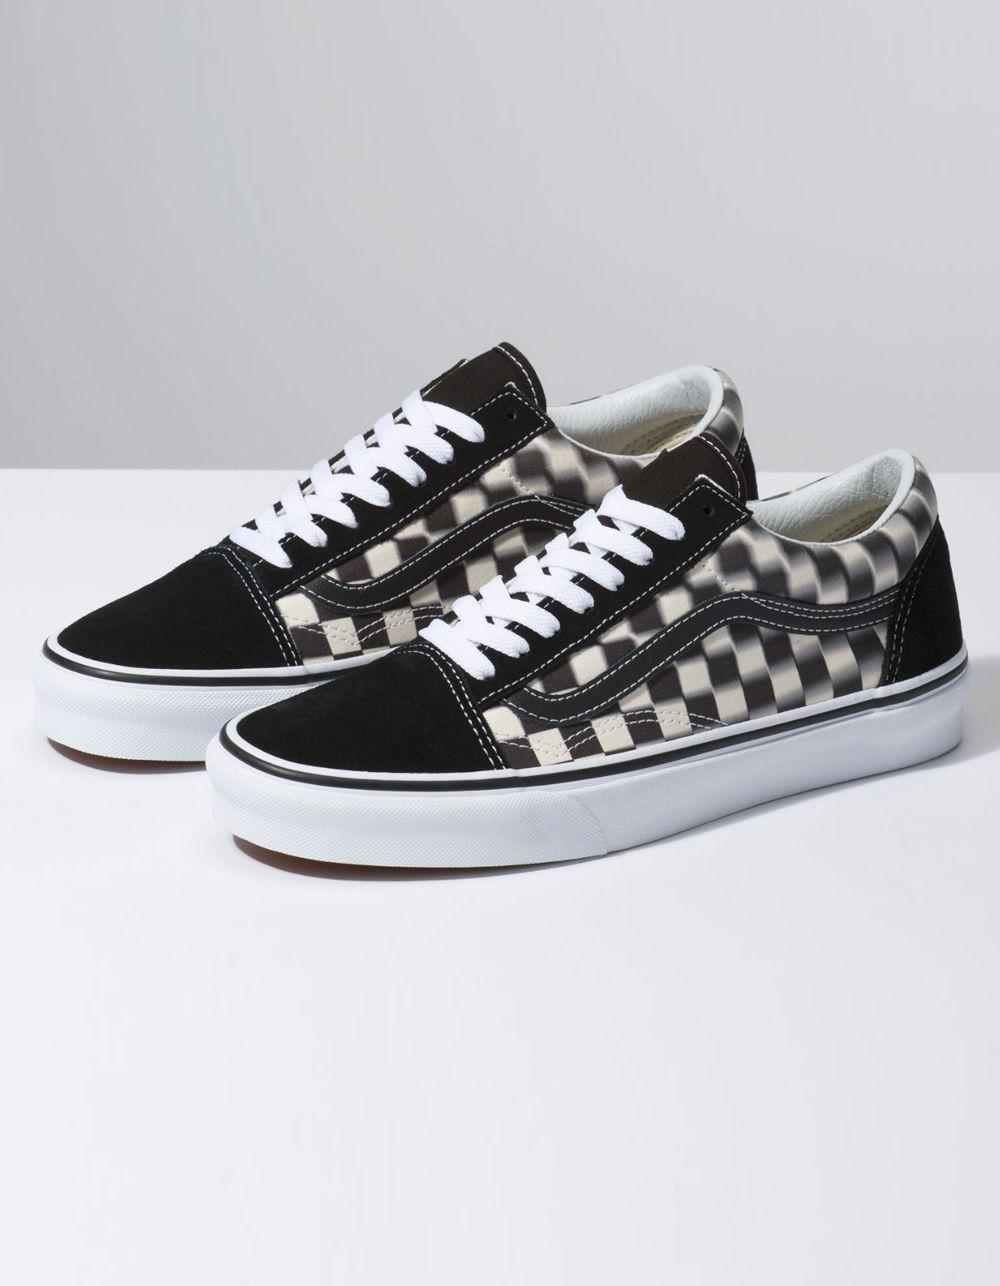 38cde172267 Lyst - Vans Blur Check Old Skool Black   Classic White Shoes in Black